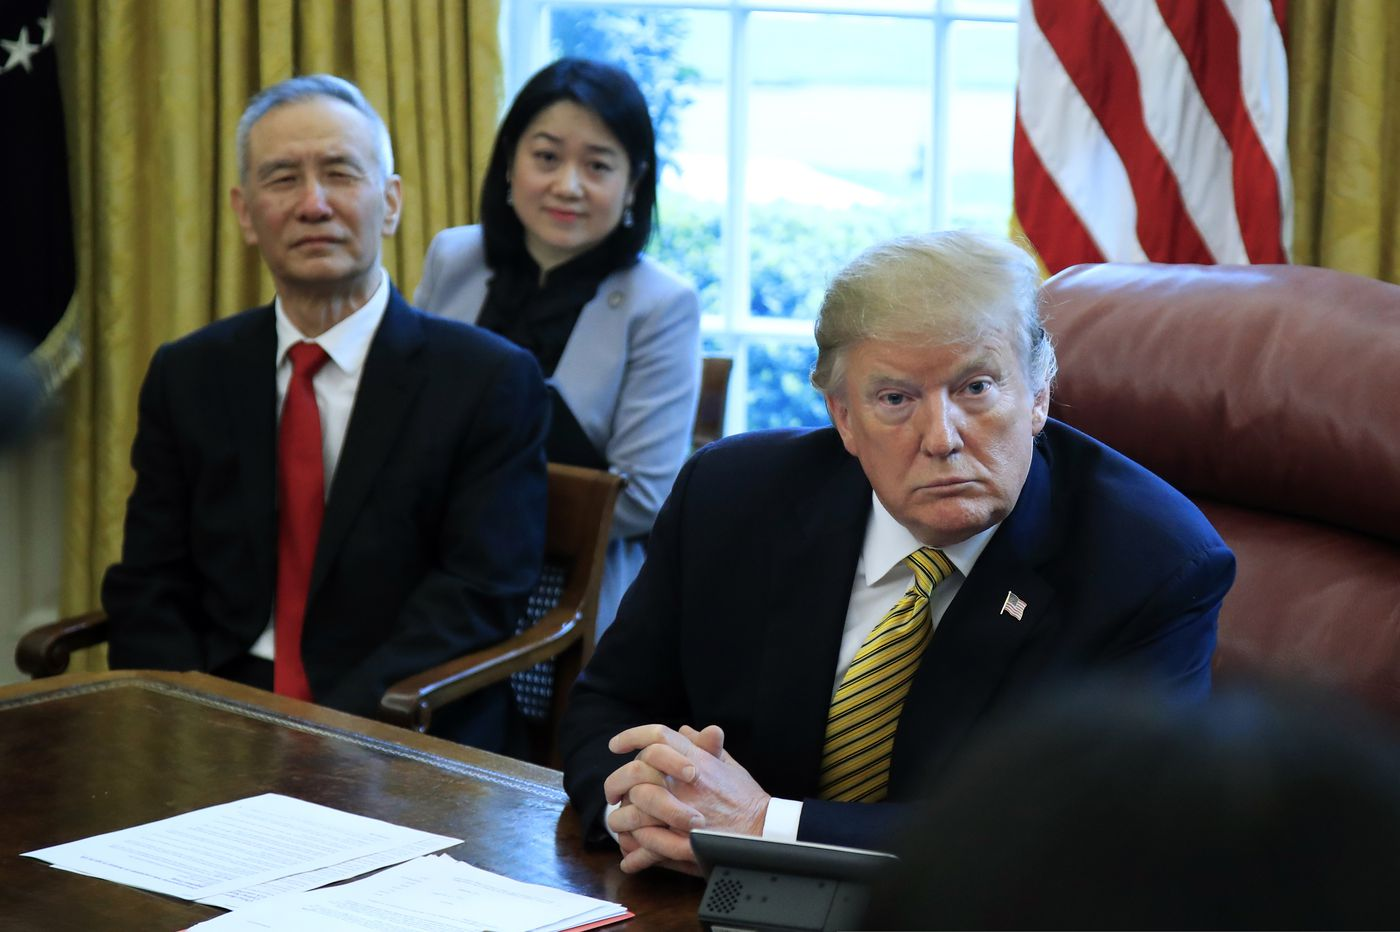 Trump says US, China 'rounding the turn' in trade talks